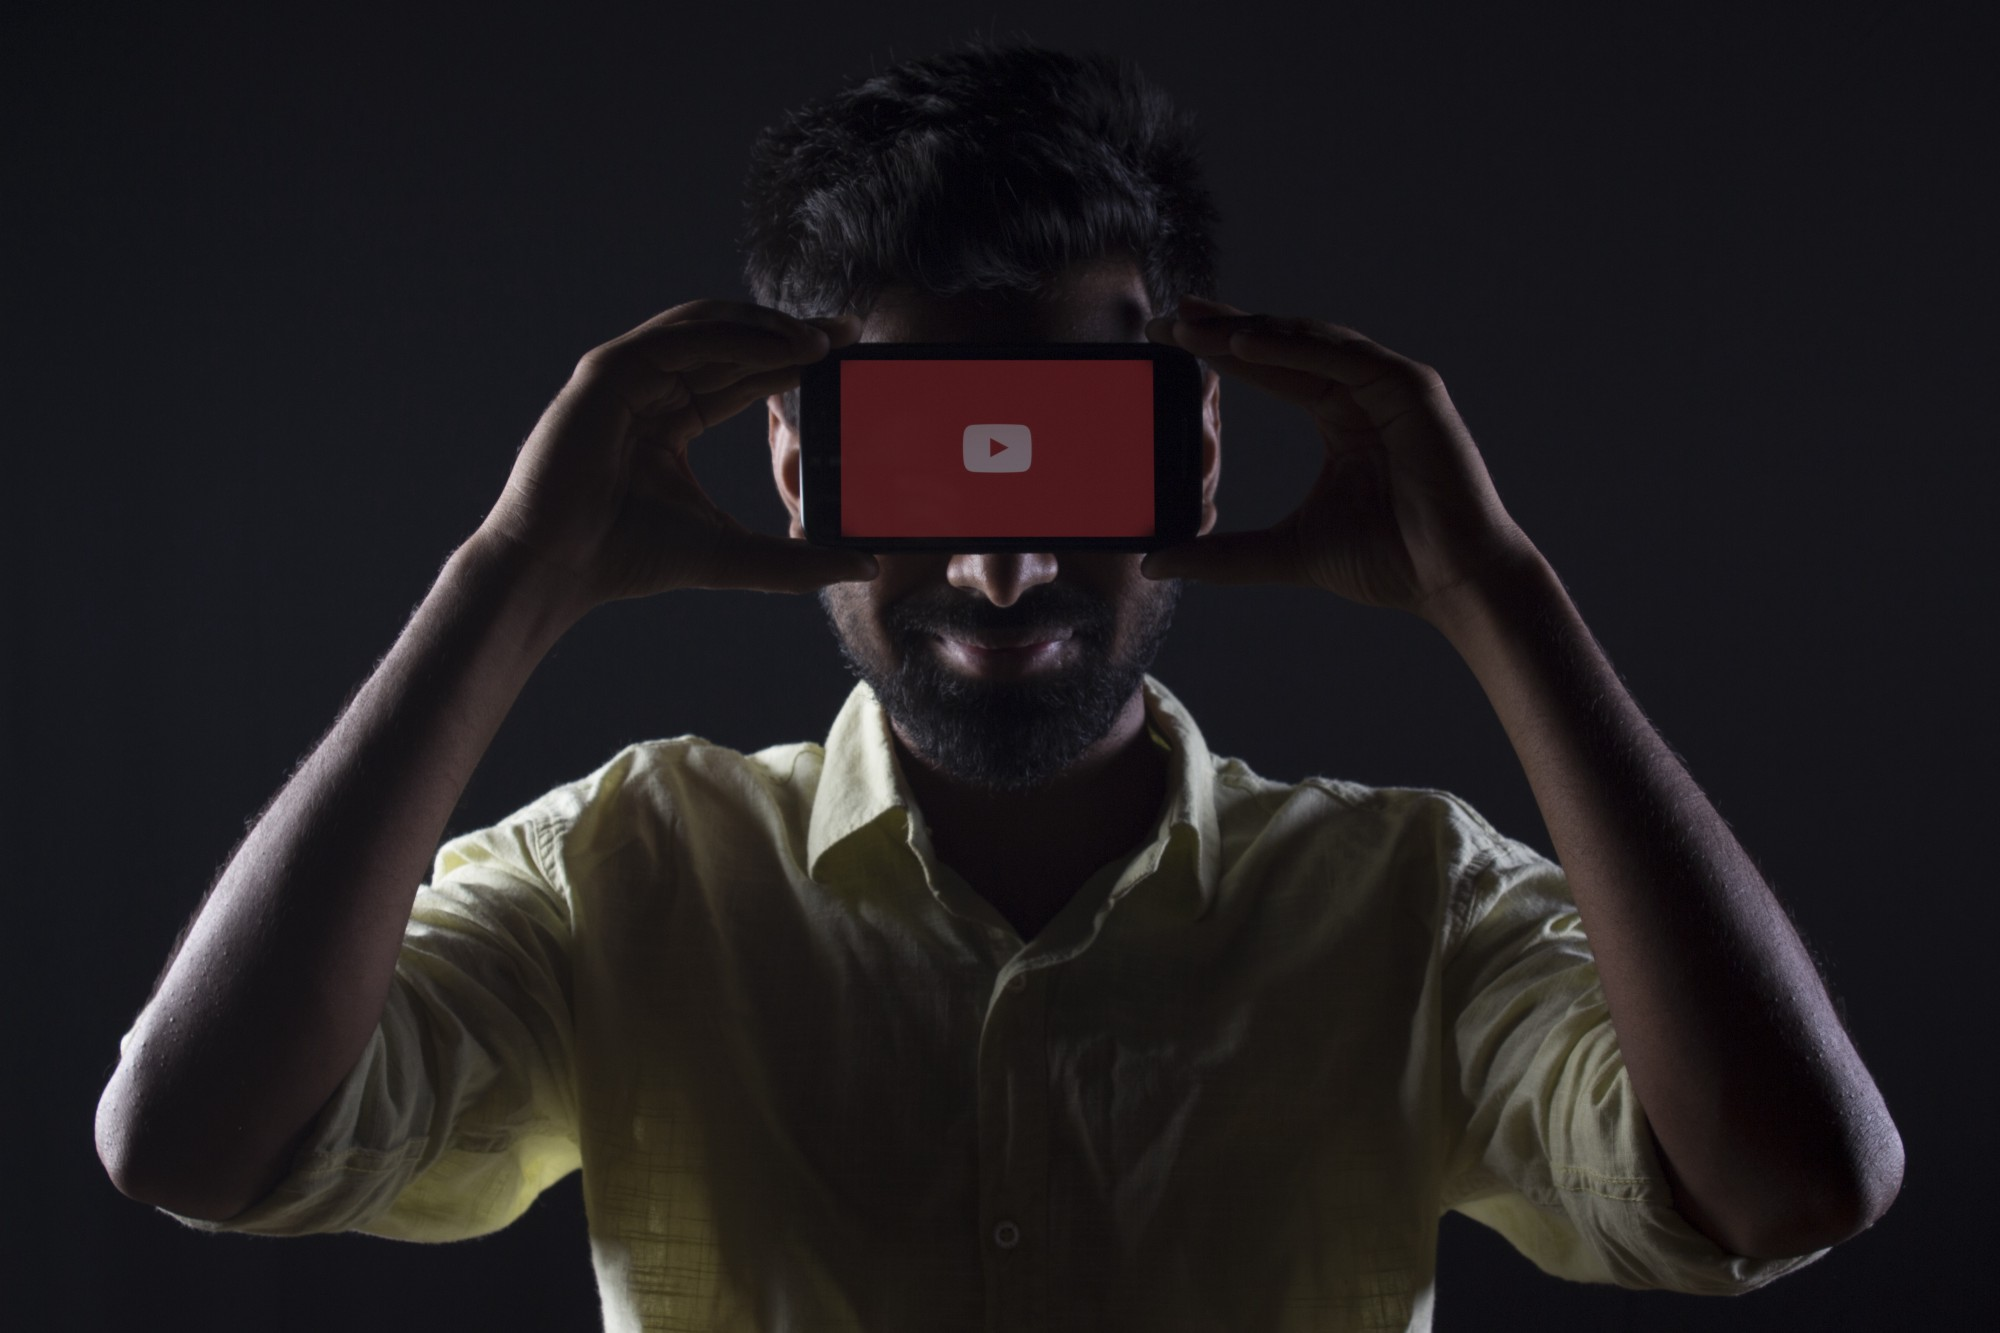 A man, dressed in a yellow button-down shirt, is holding up a phone to his forehead that has the YouTube logo on the screen.